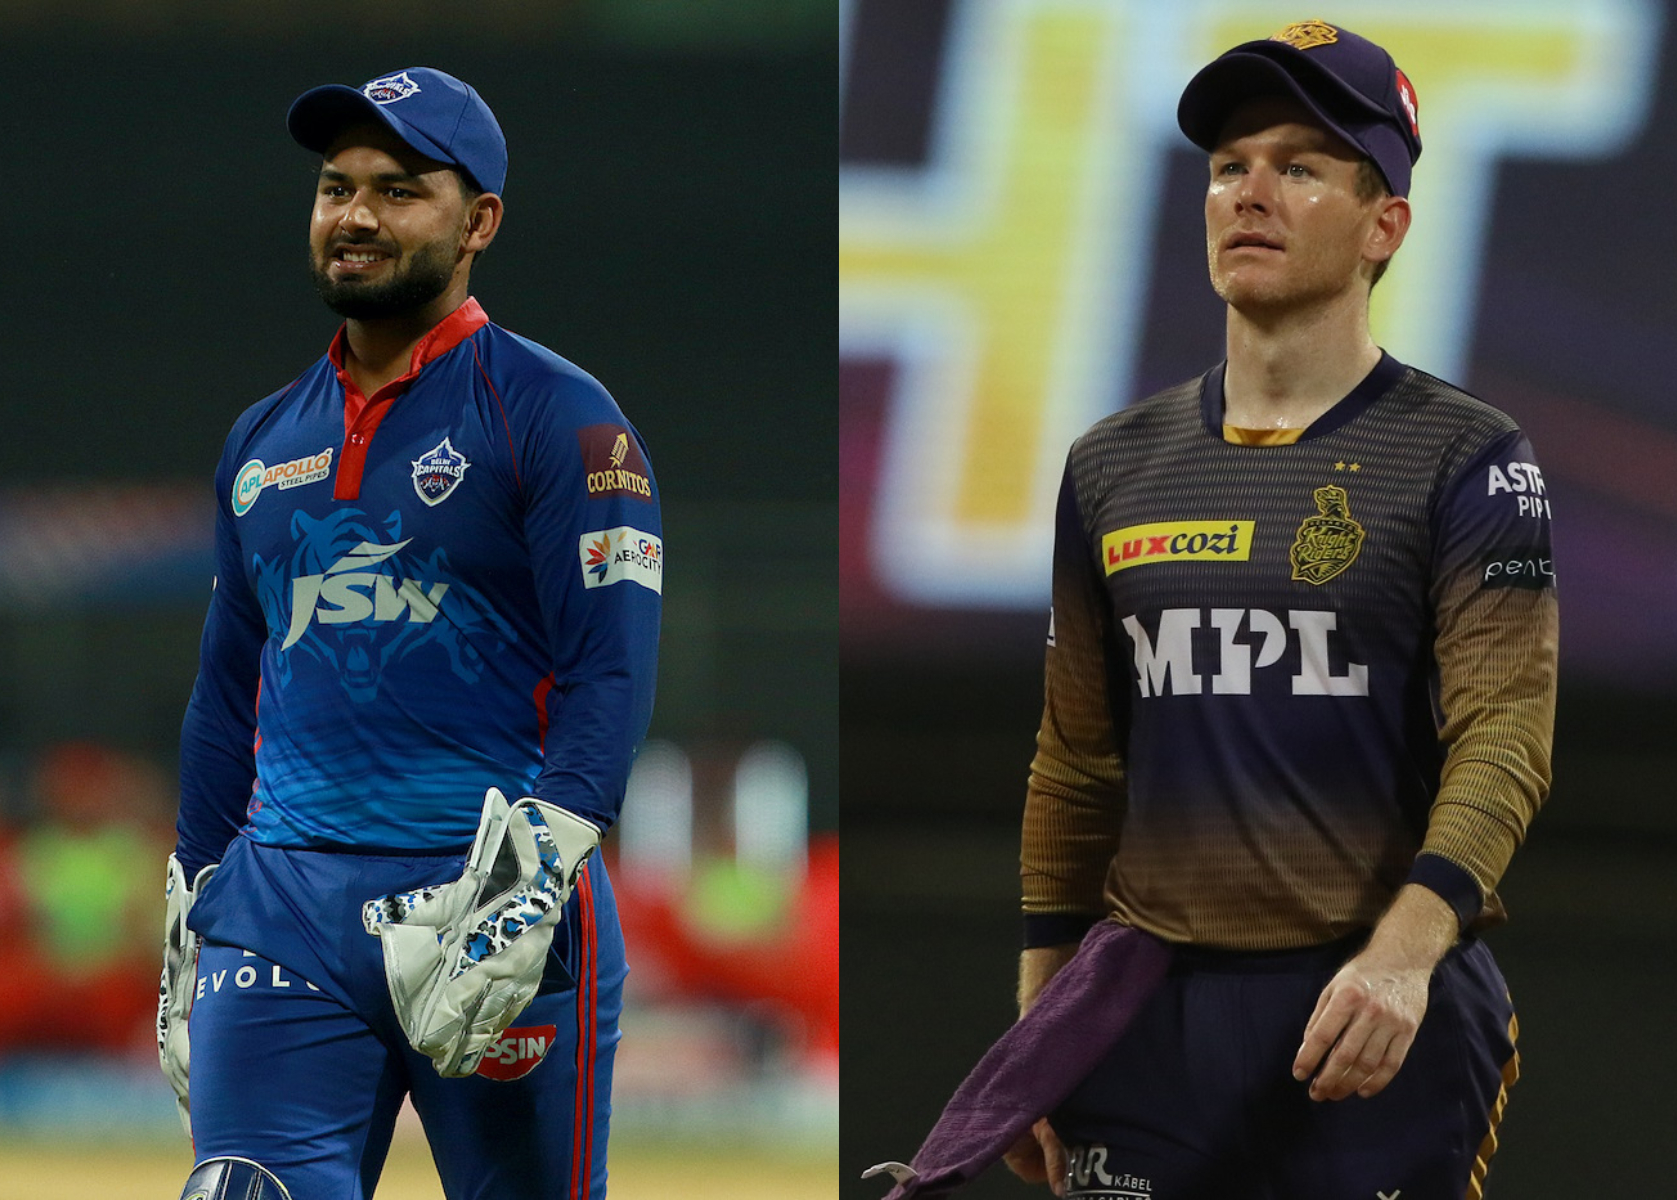 Rishabh Pant needs a win to get back on the wagon, while Eoin Morgan craves for momentum with a victory   BCCI-IPL